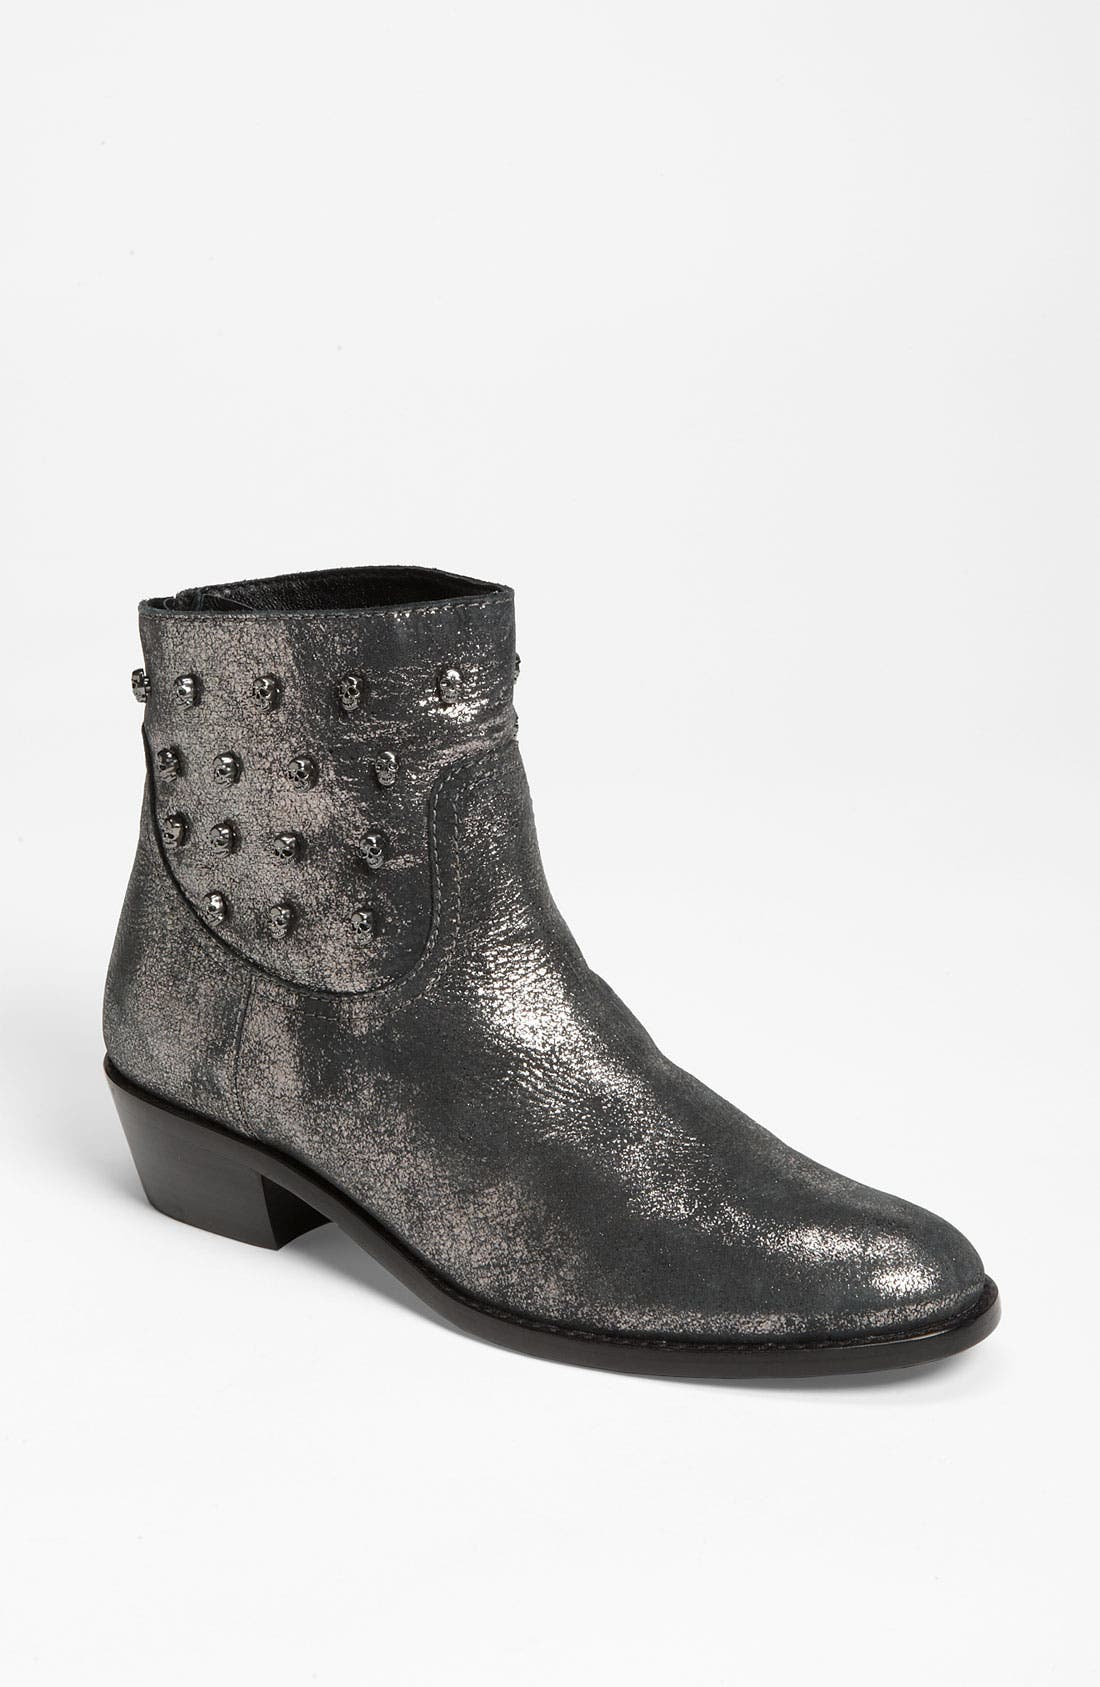 ZADIG & VOLTAIRE,                             'Teddy' Boot,                             Main thumbnail 1, color,                             001